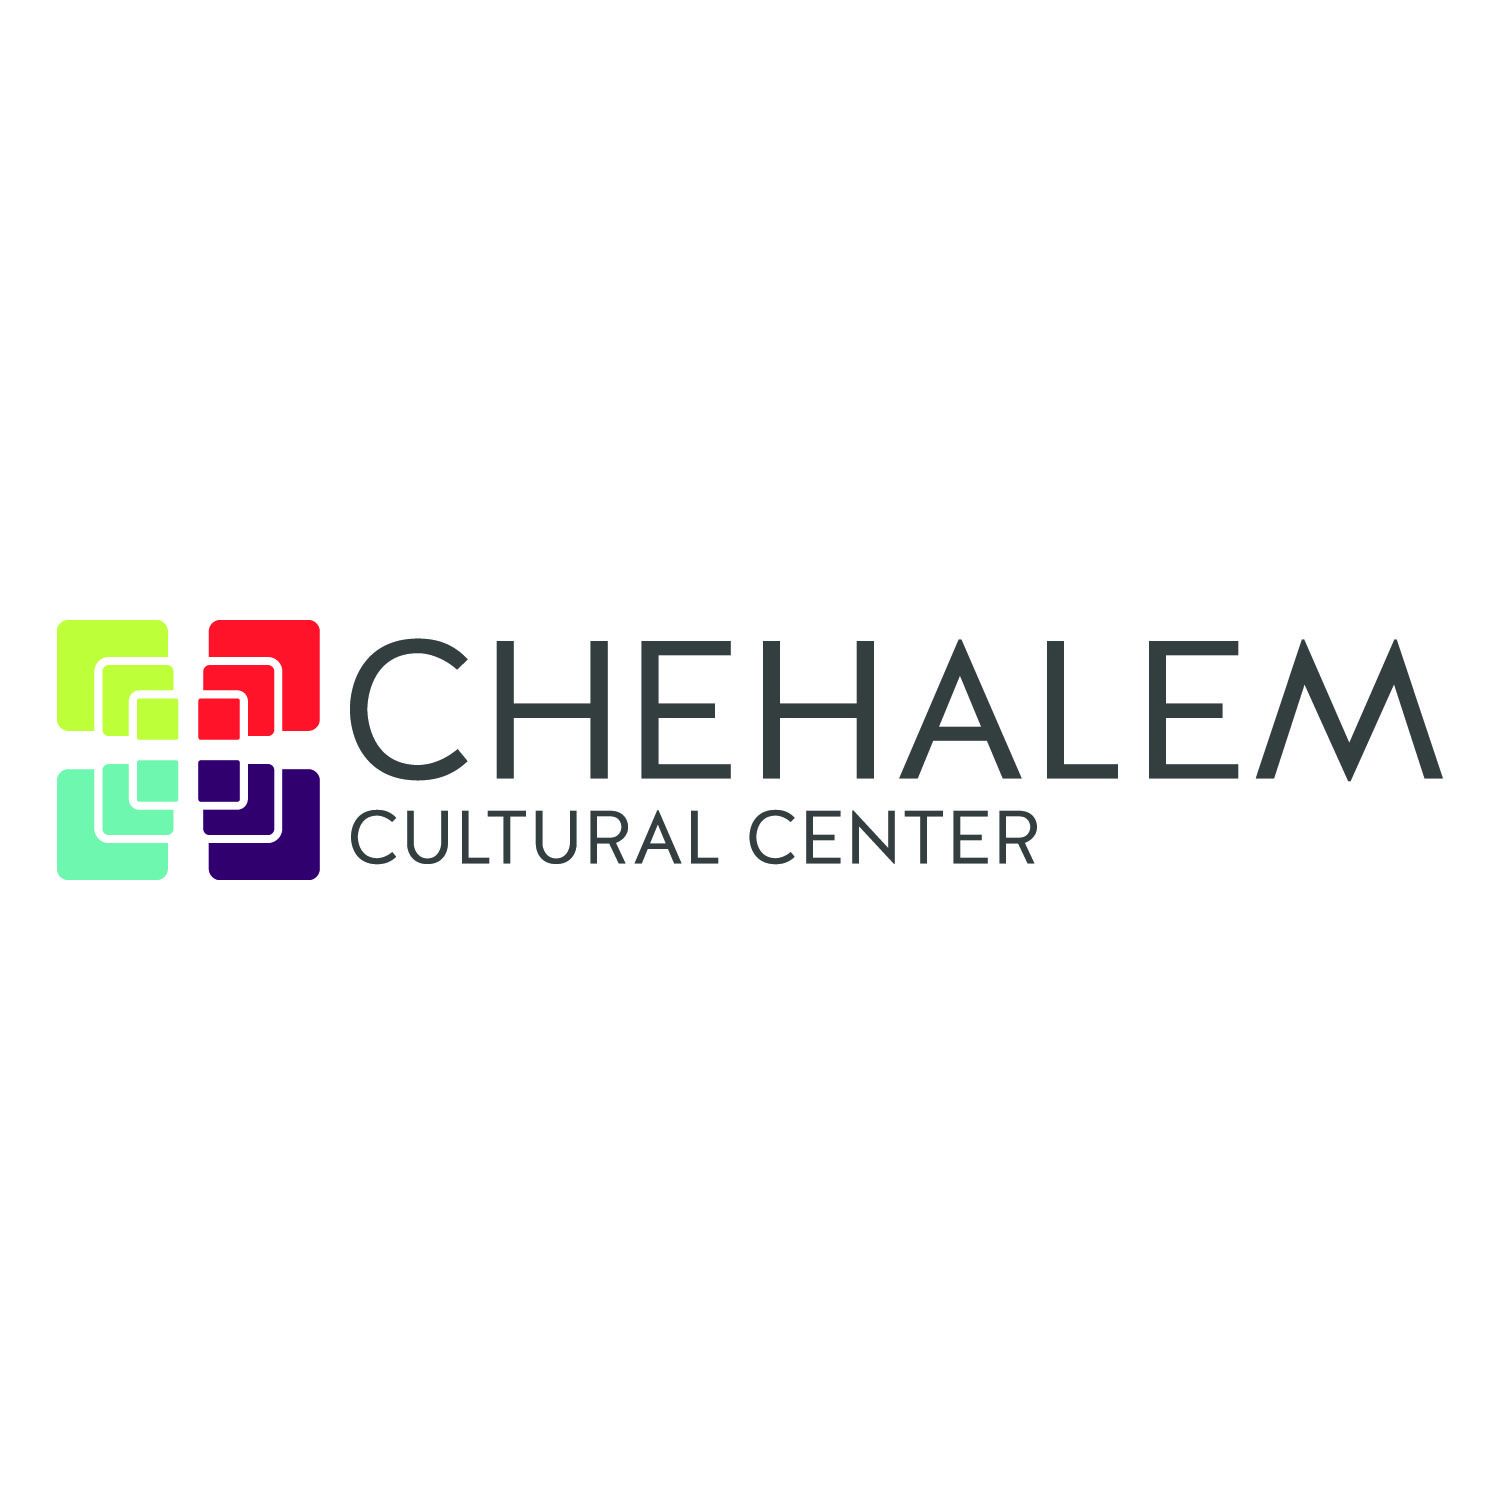 Chehalem Cultural Center Newberg Oregon